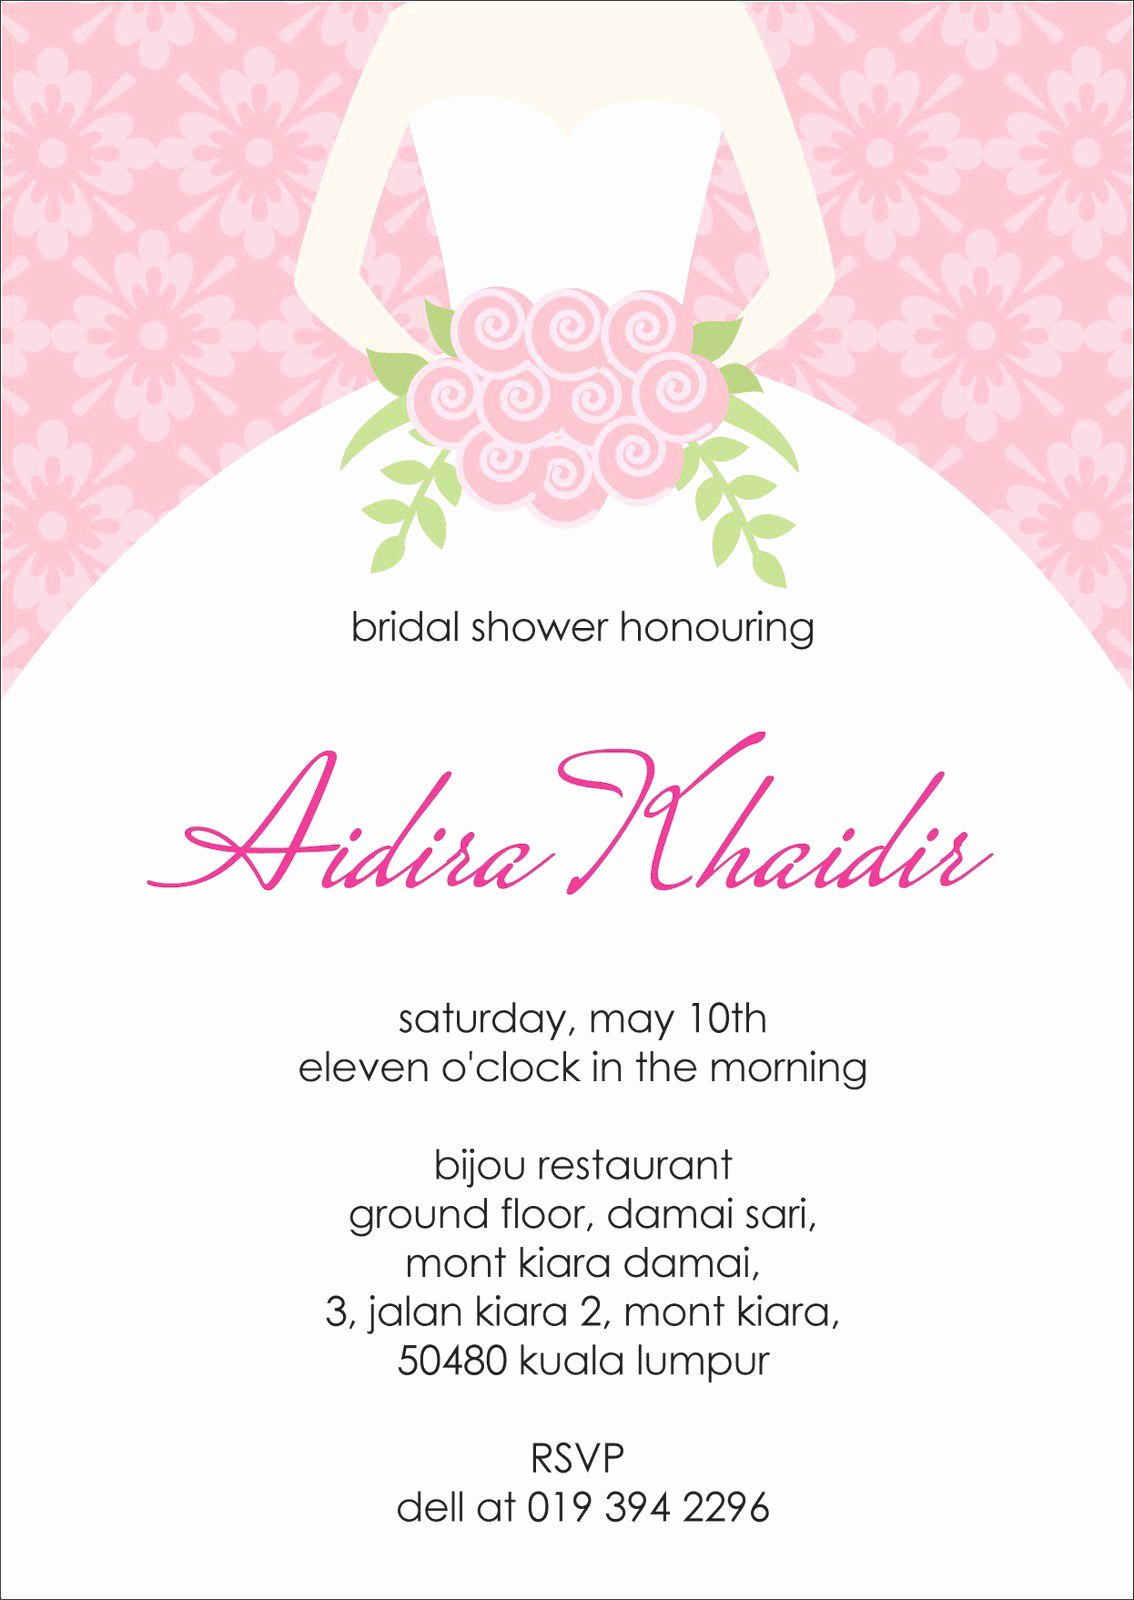 Bridal Shower Invitation Template Fresh Bridal Shower Invitations Bridal Shower Invitation